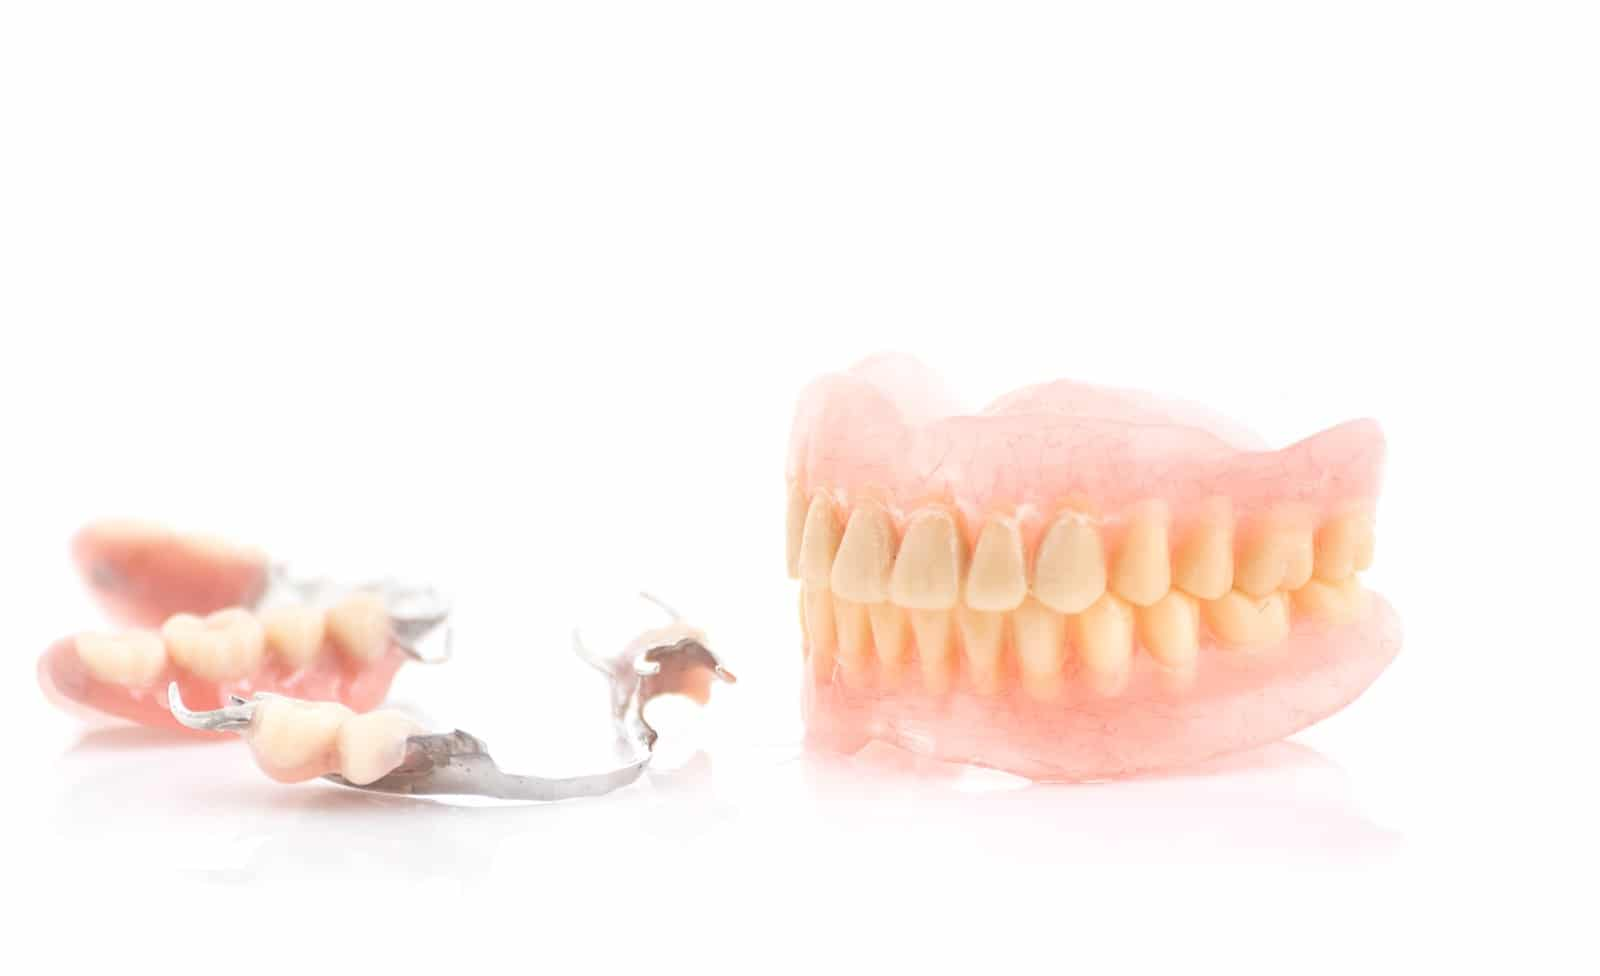 Bright Value Dental in Bellaire, TX provides dentures and bridges for missing teeth.